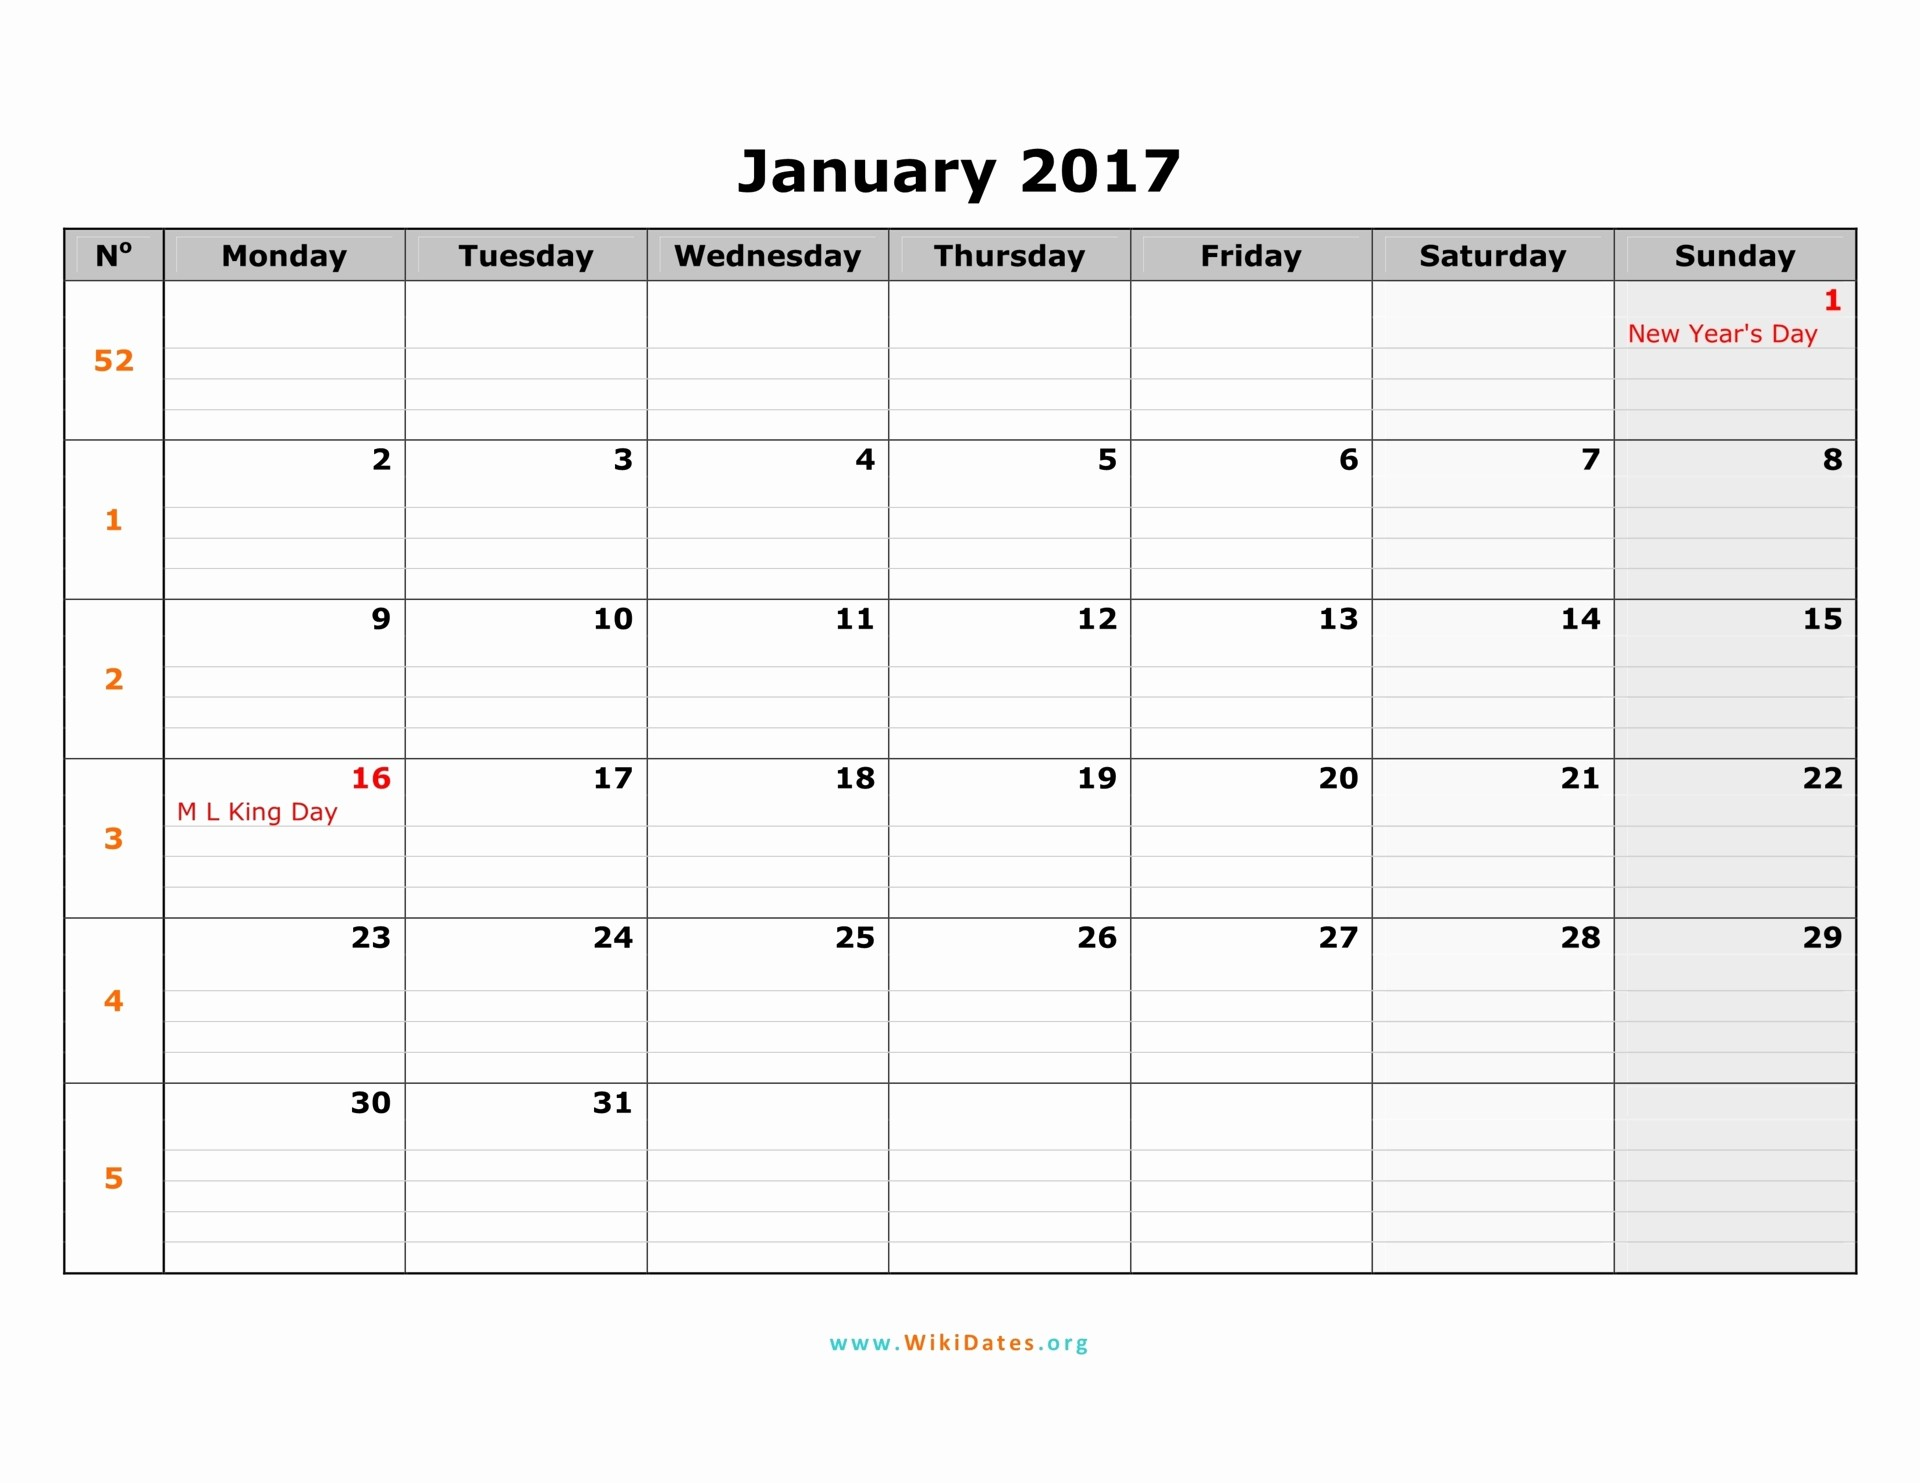 Calendar 2017 Monday to Sunday Beautiful 2017 Calendar